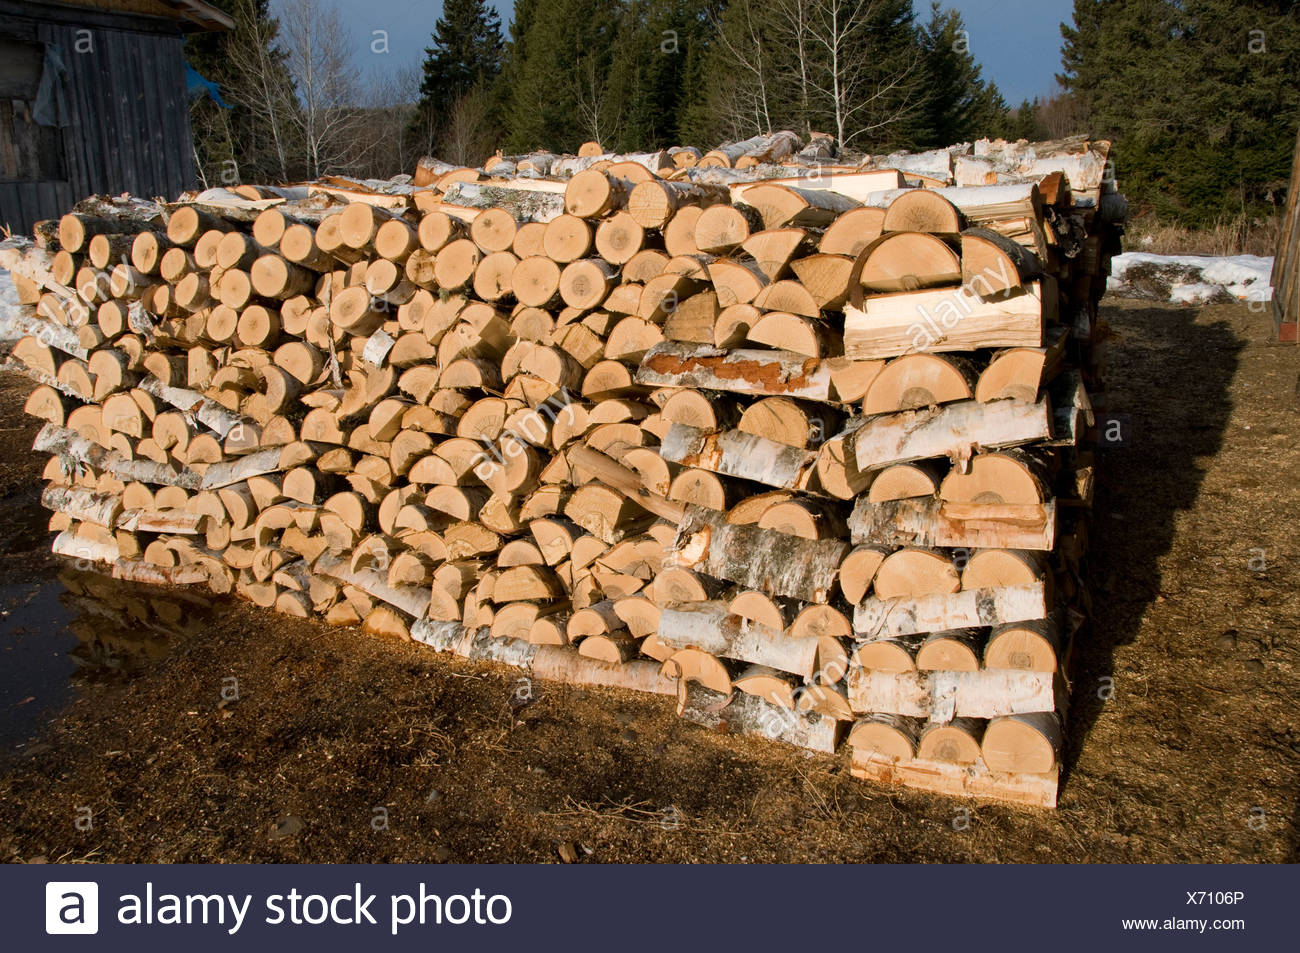 Neatly stacked pile of firewood cut from birch trees, Ontario, Canada - Stock Image